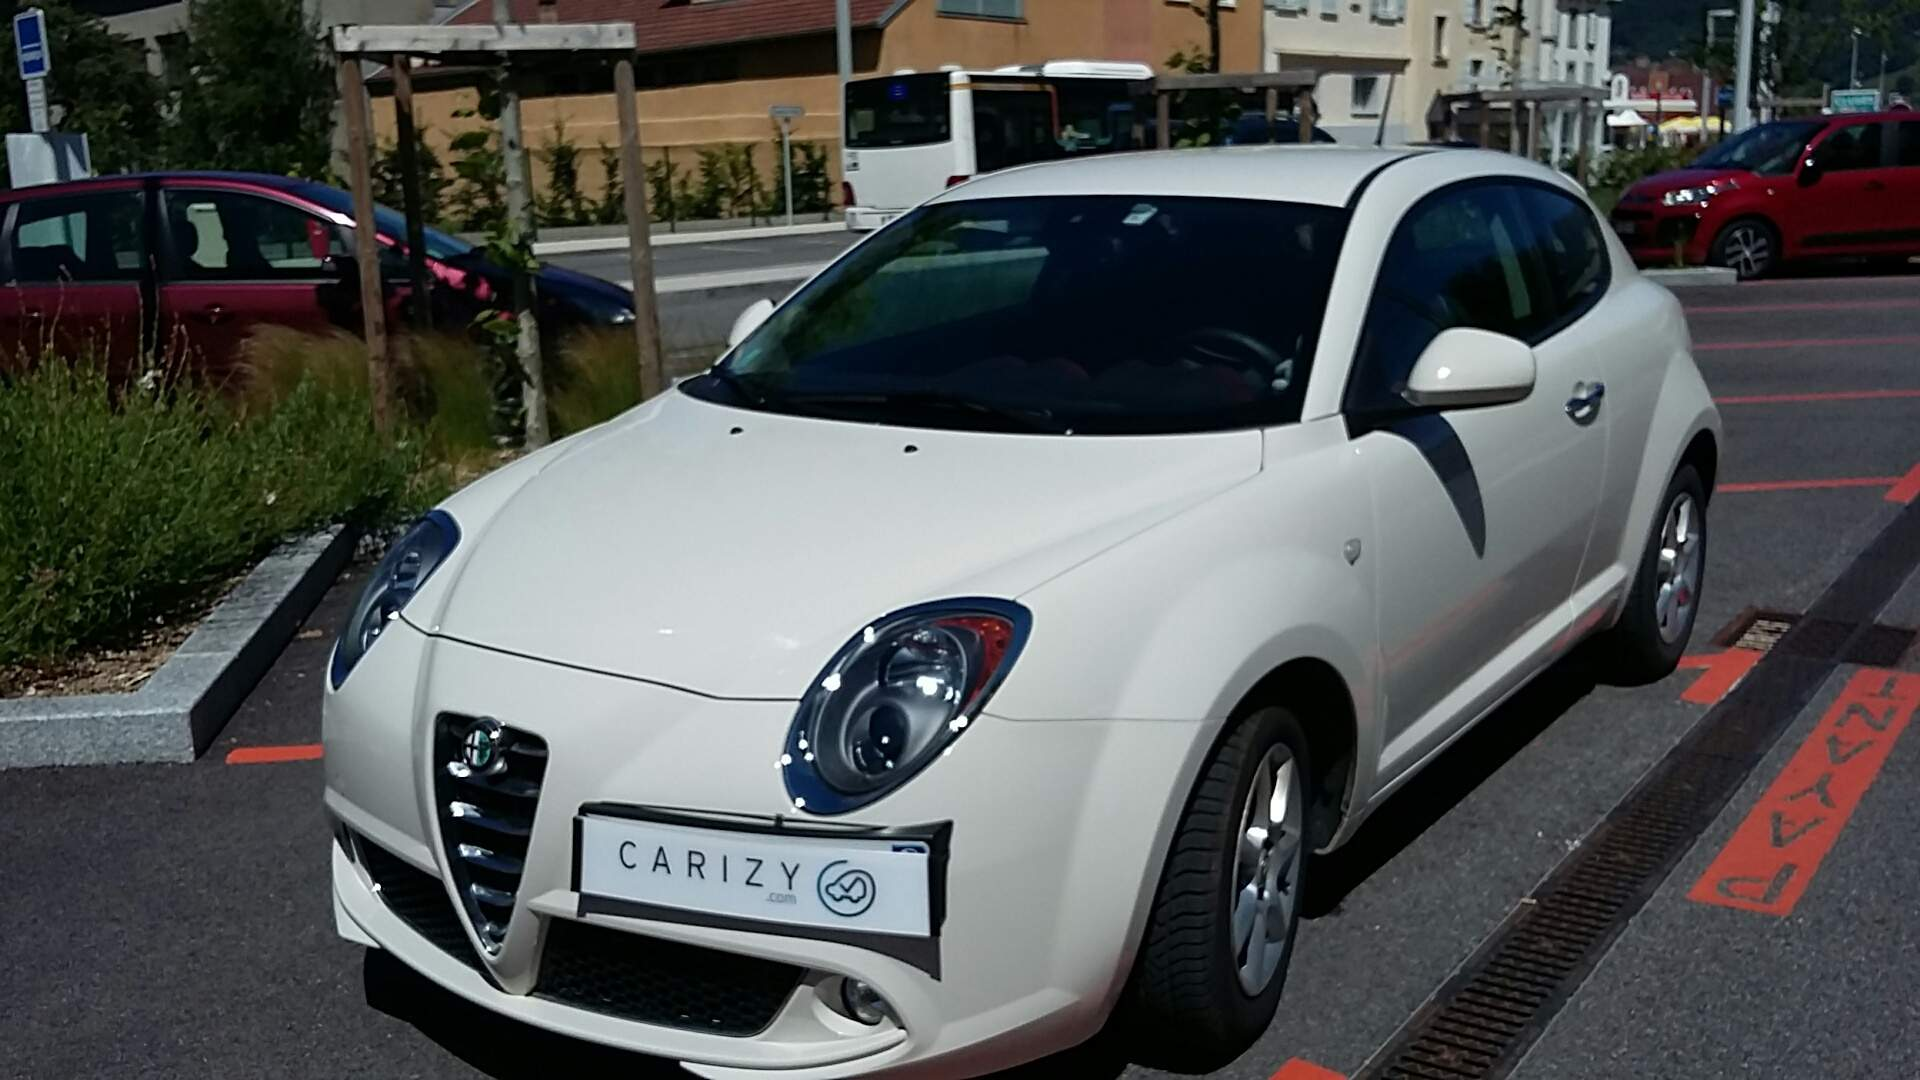 voiture alfa romeo mito 0 9 twinair 105 distinctive start occasion essence 2014 26900 km. Black Bedroom Furniture Sets. Home Design Ideas